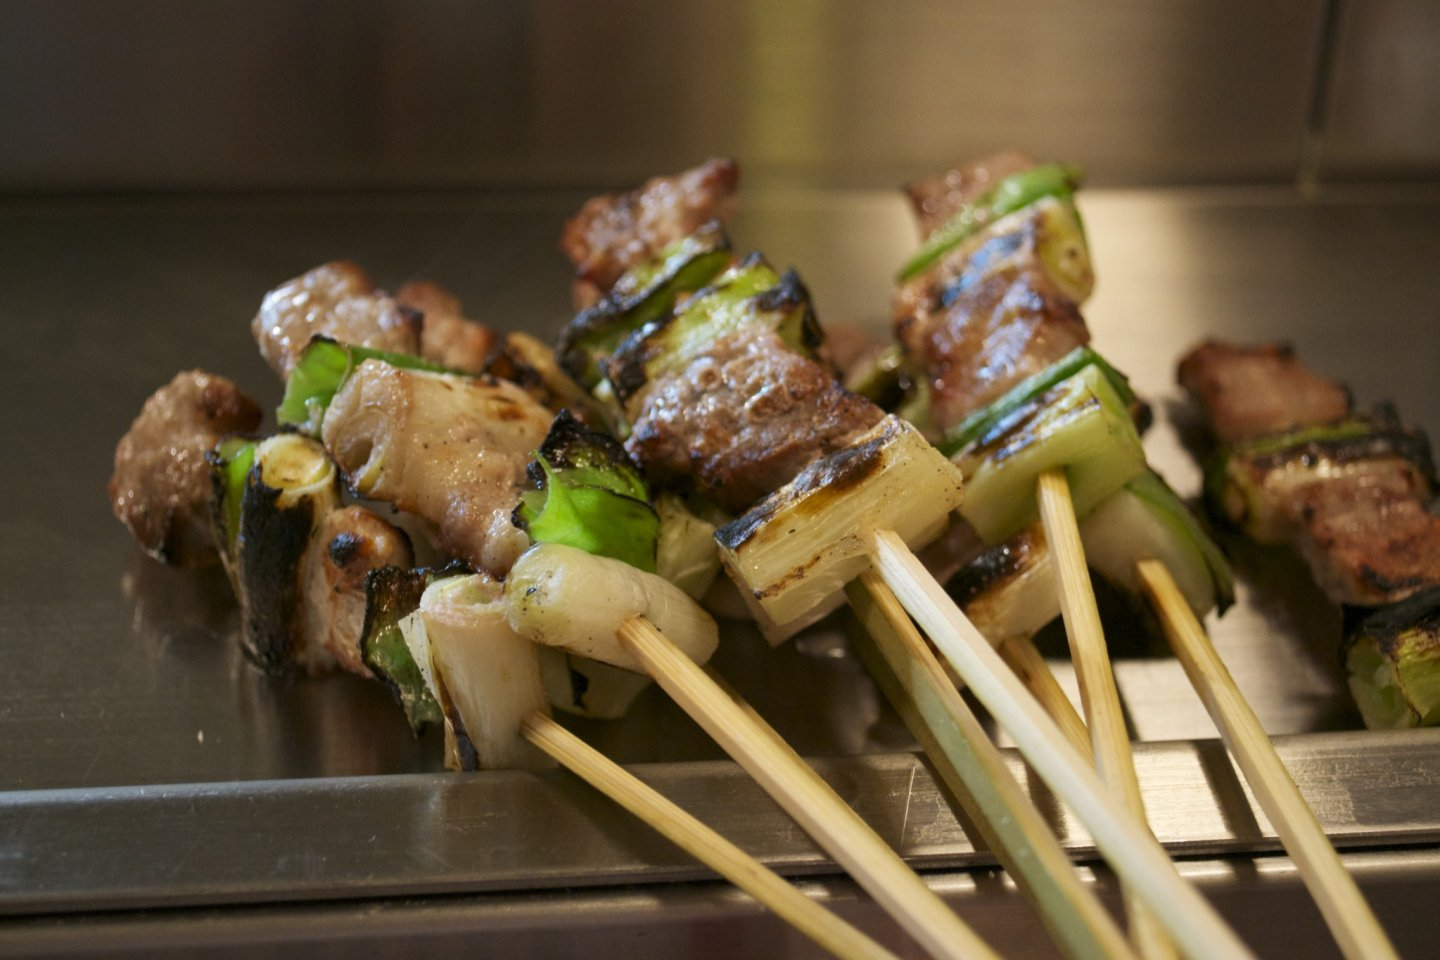 Yakitori hot off the grill